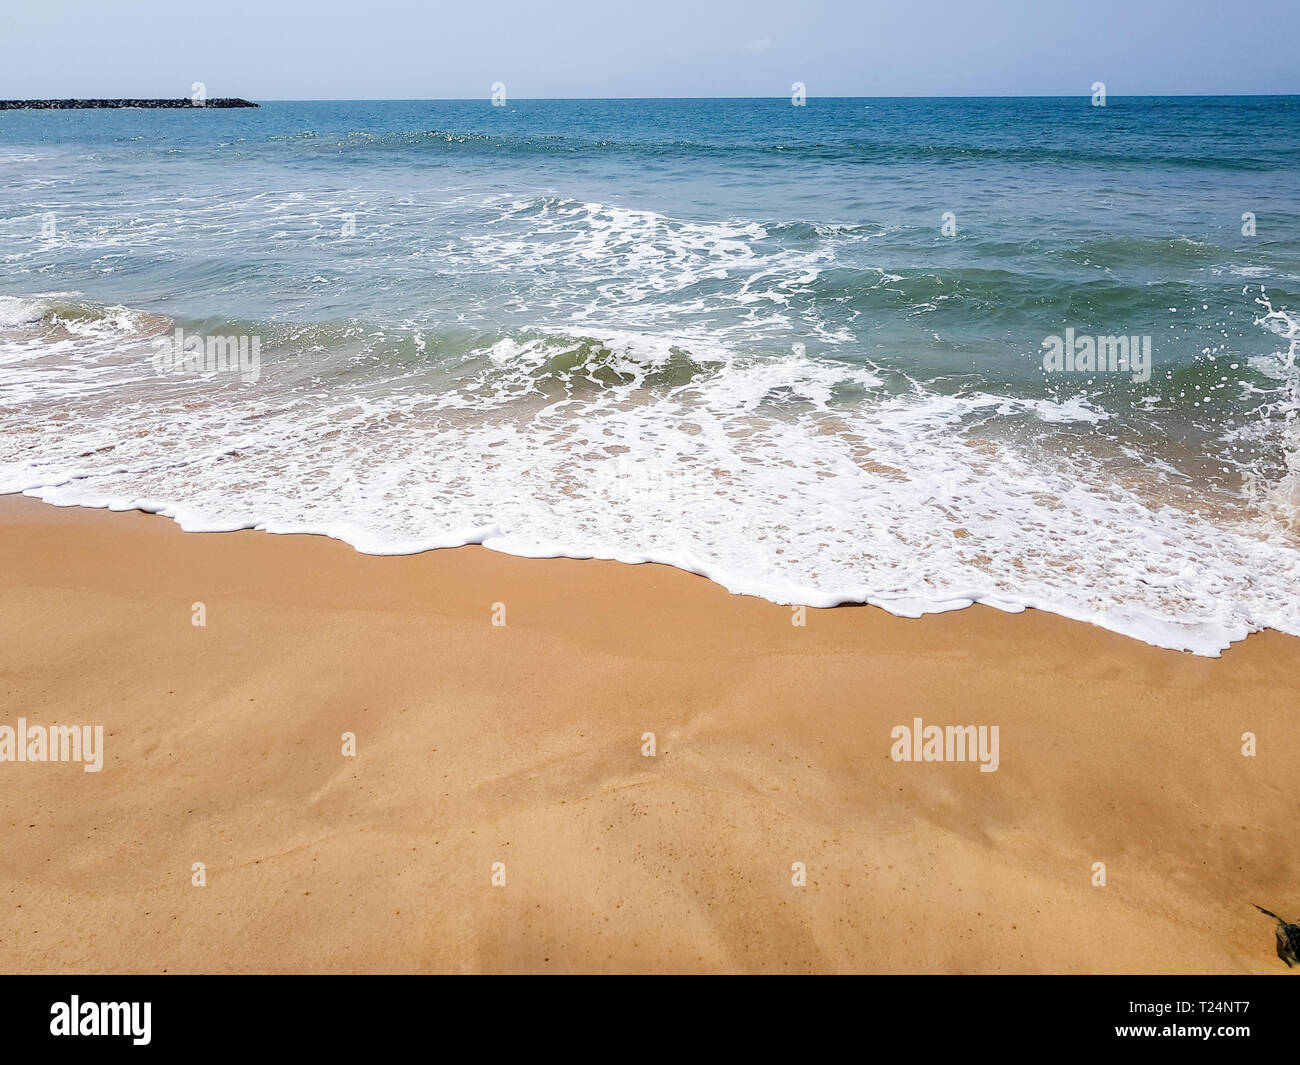 Waves with white sea foam on a sandy beach at low tide in Lagos, Nigeria. Beautiful waterfront view of the Atlantic ocean with copy space. - Stock Image